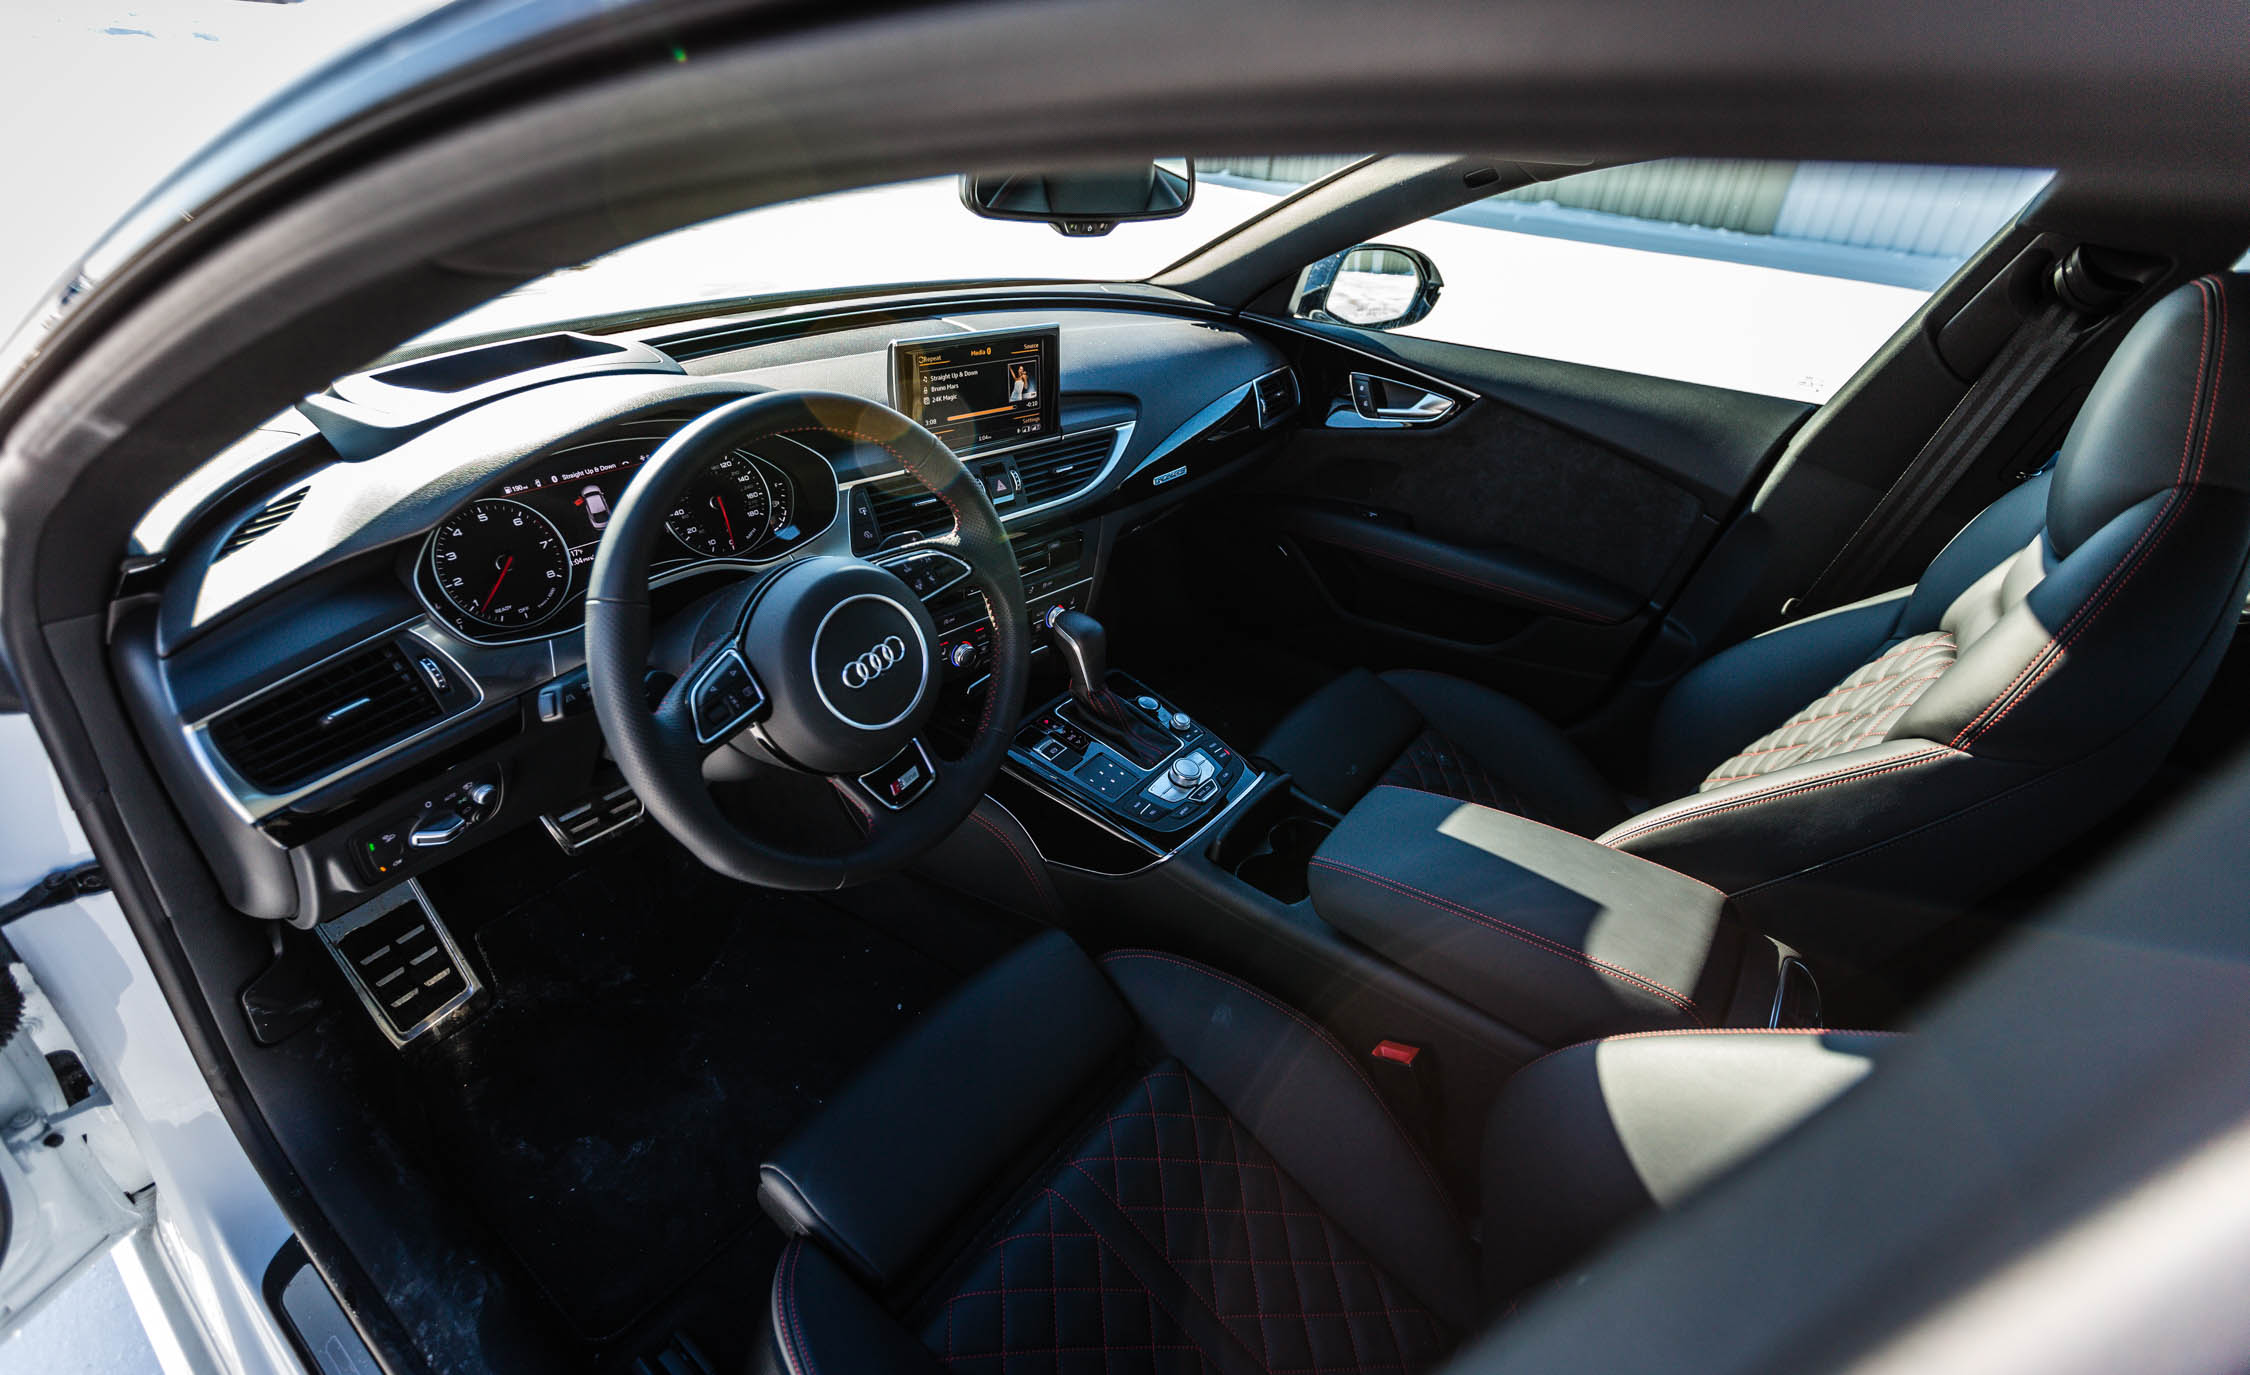 2017 Audi A7 Interior (Photo 17 of 24)